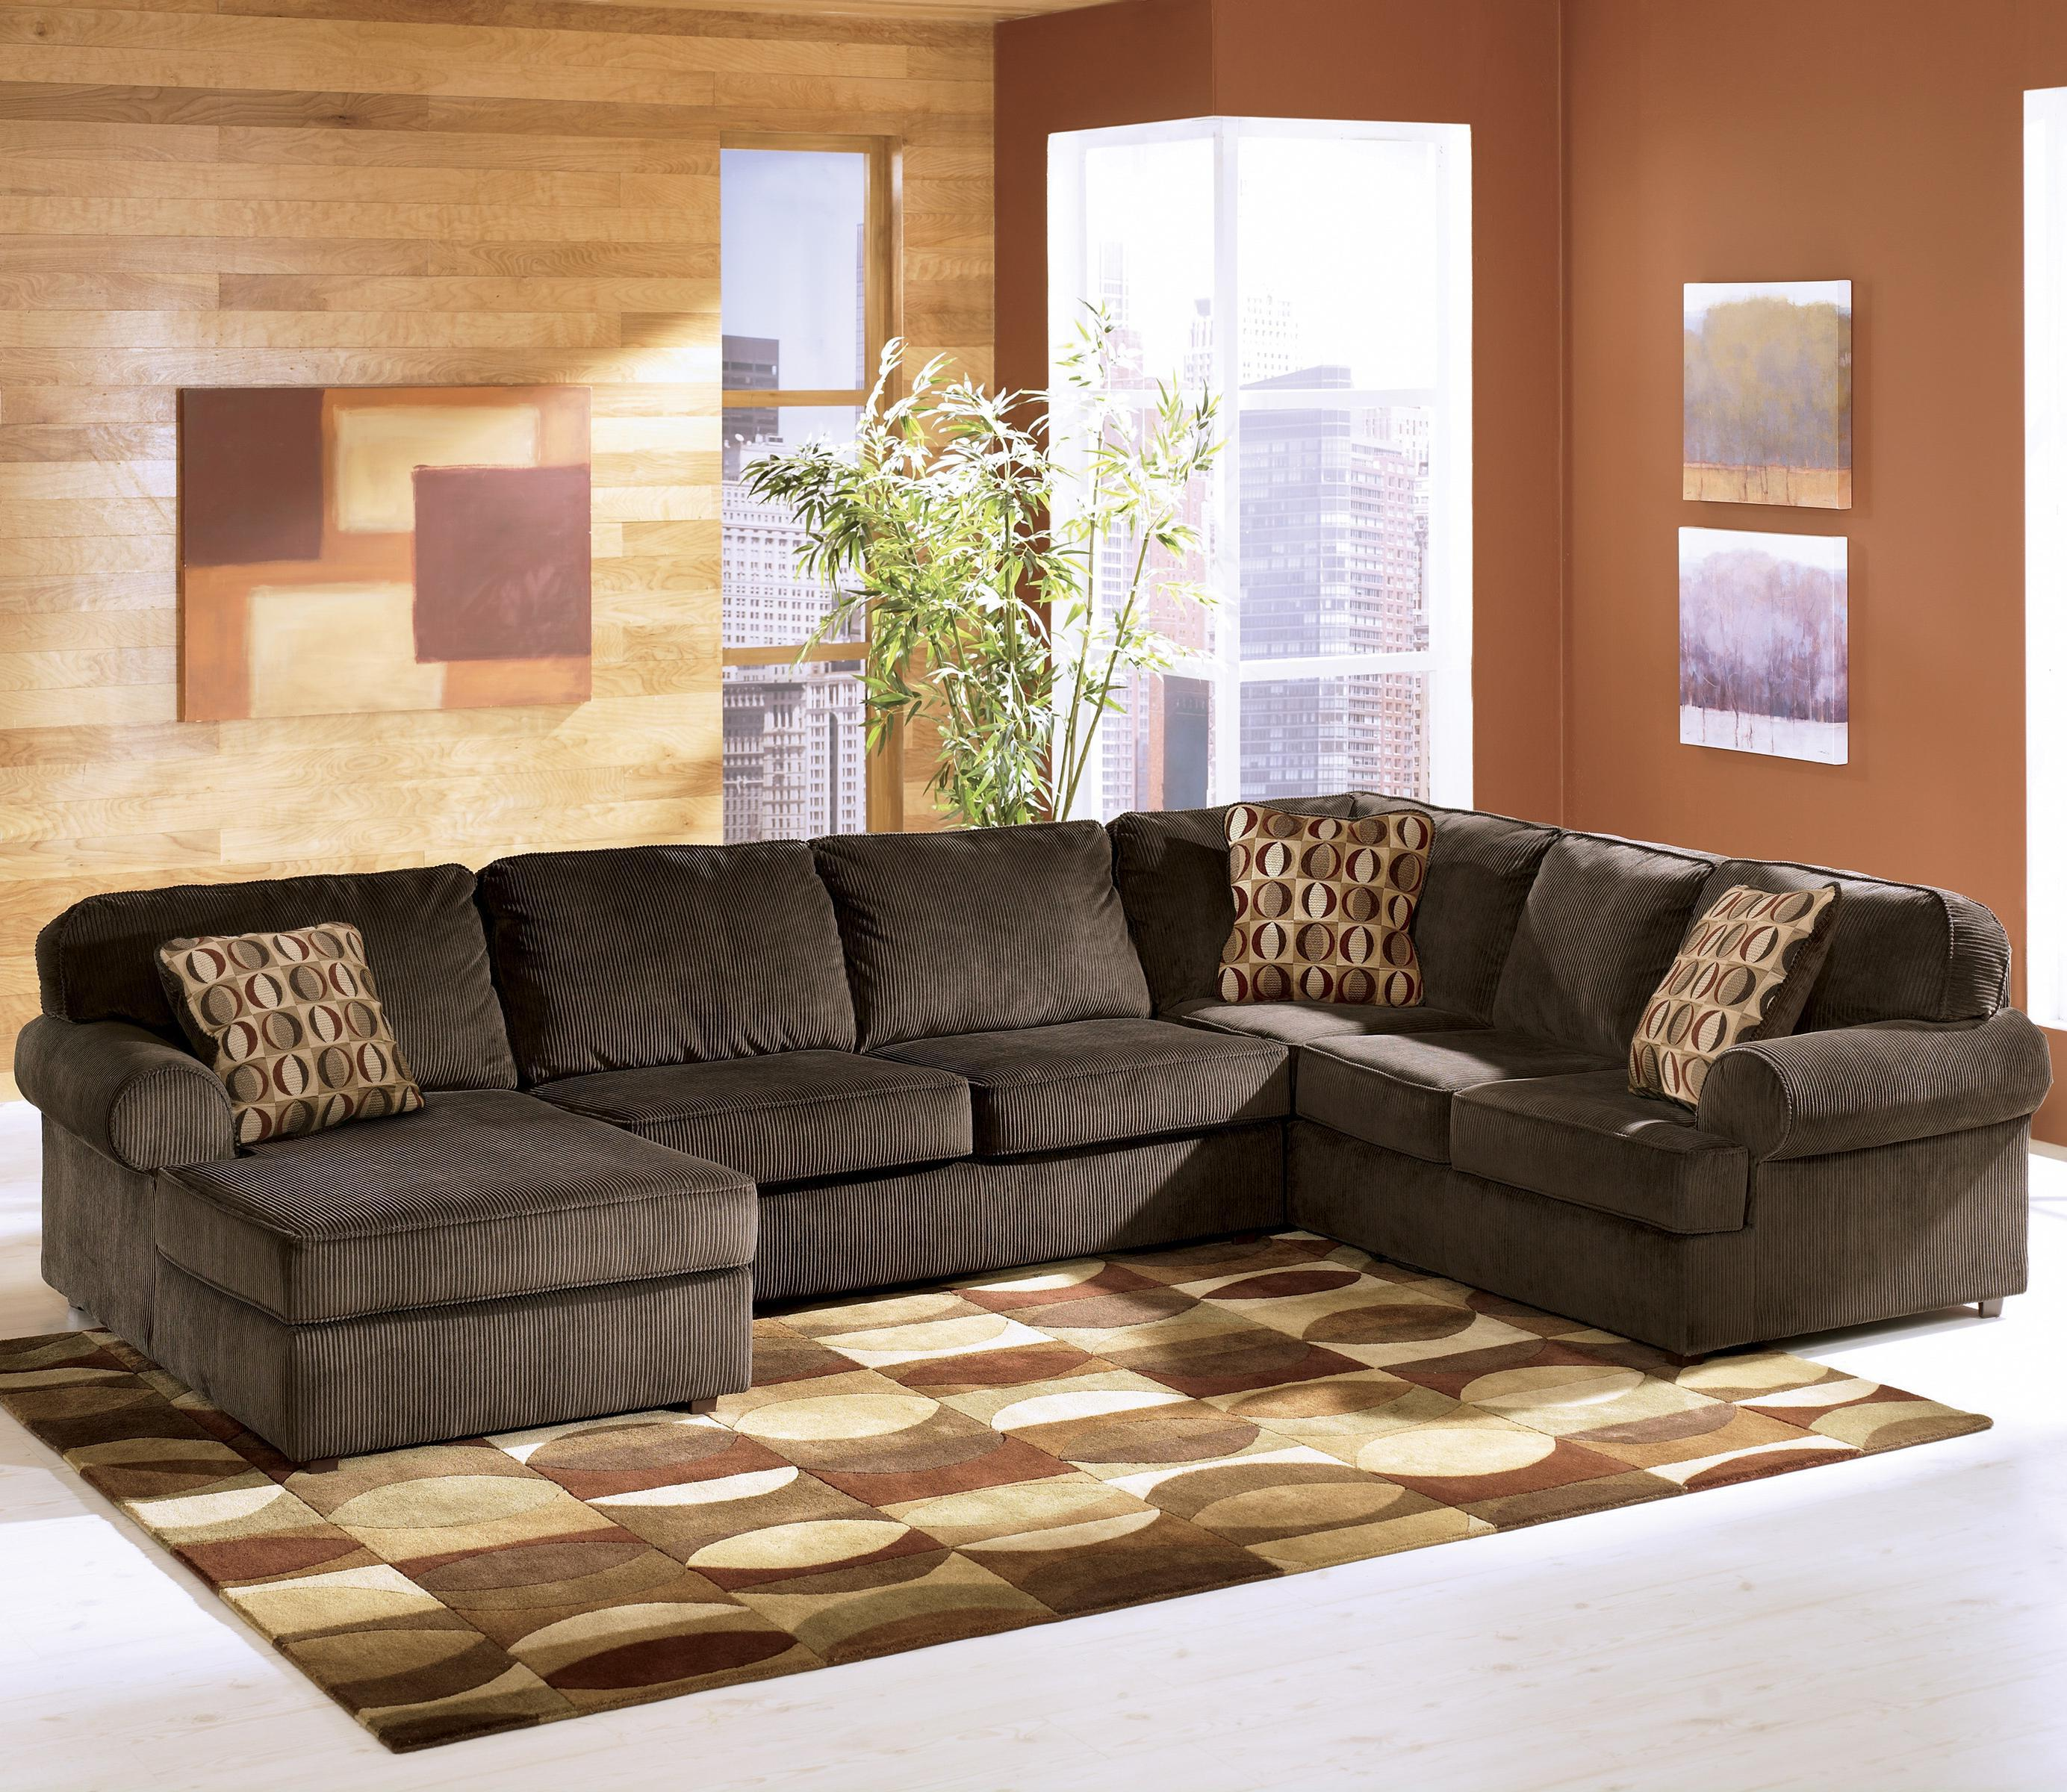 Living Room Design Chic Ashley Furniture Tucson For Home Furniture